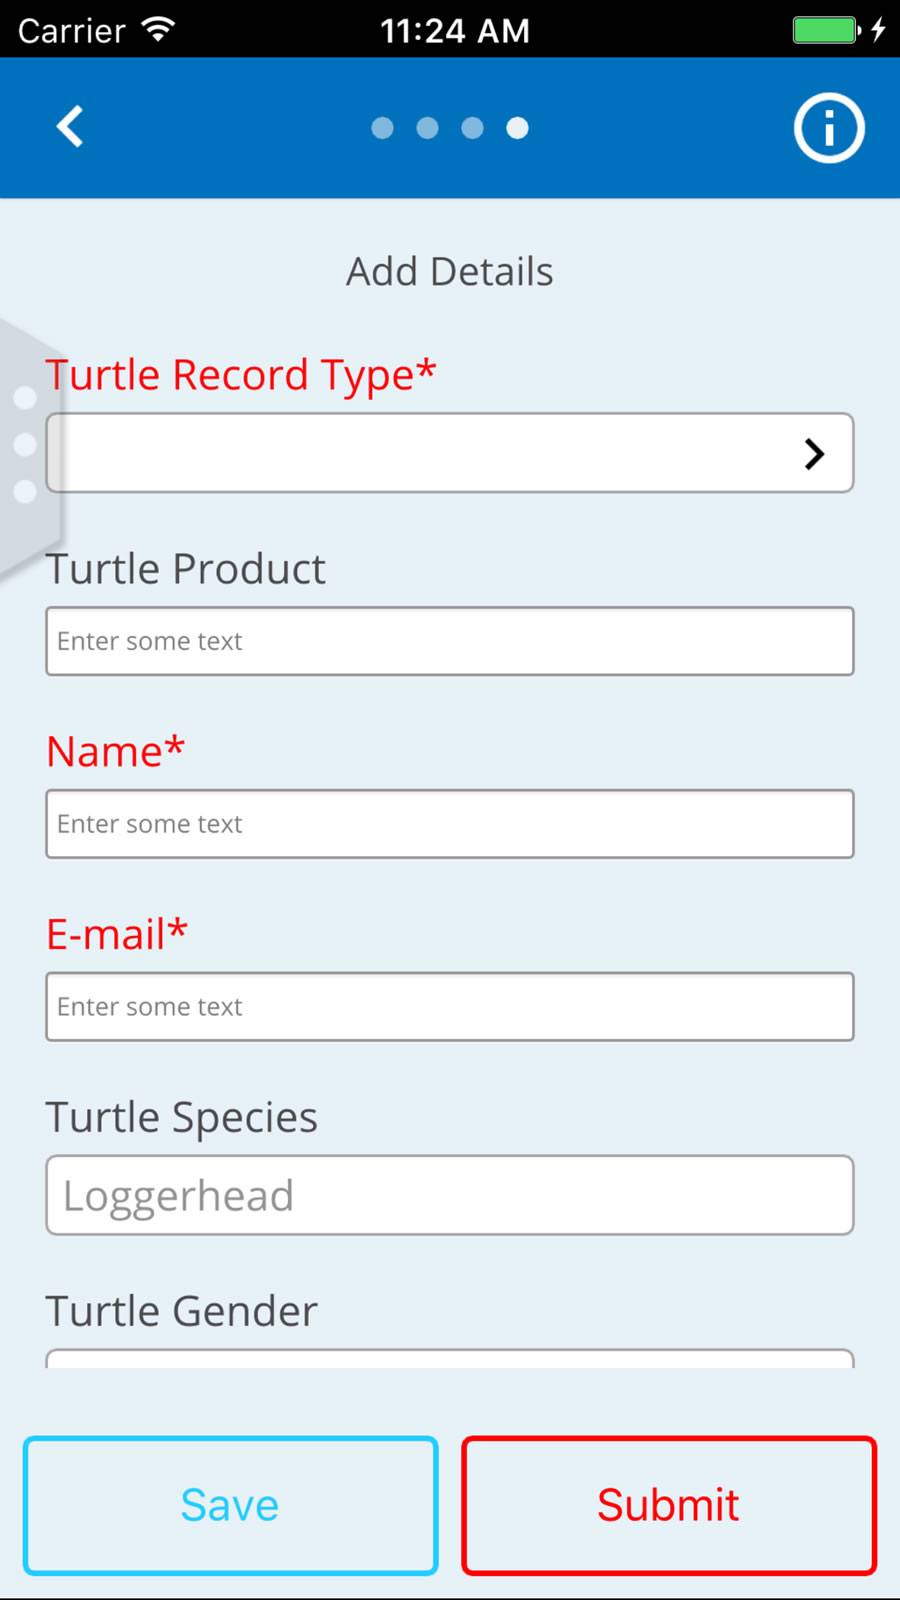 Once information is uploaded to the TURT app, it is automatically and instantaneously inserted into a global sea turtle database.